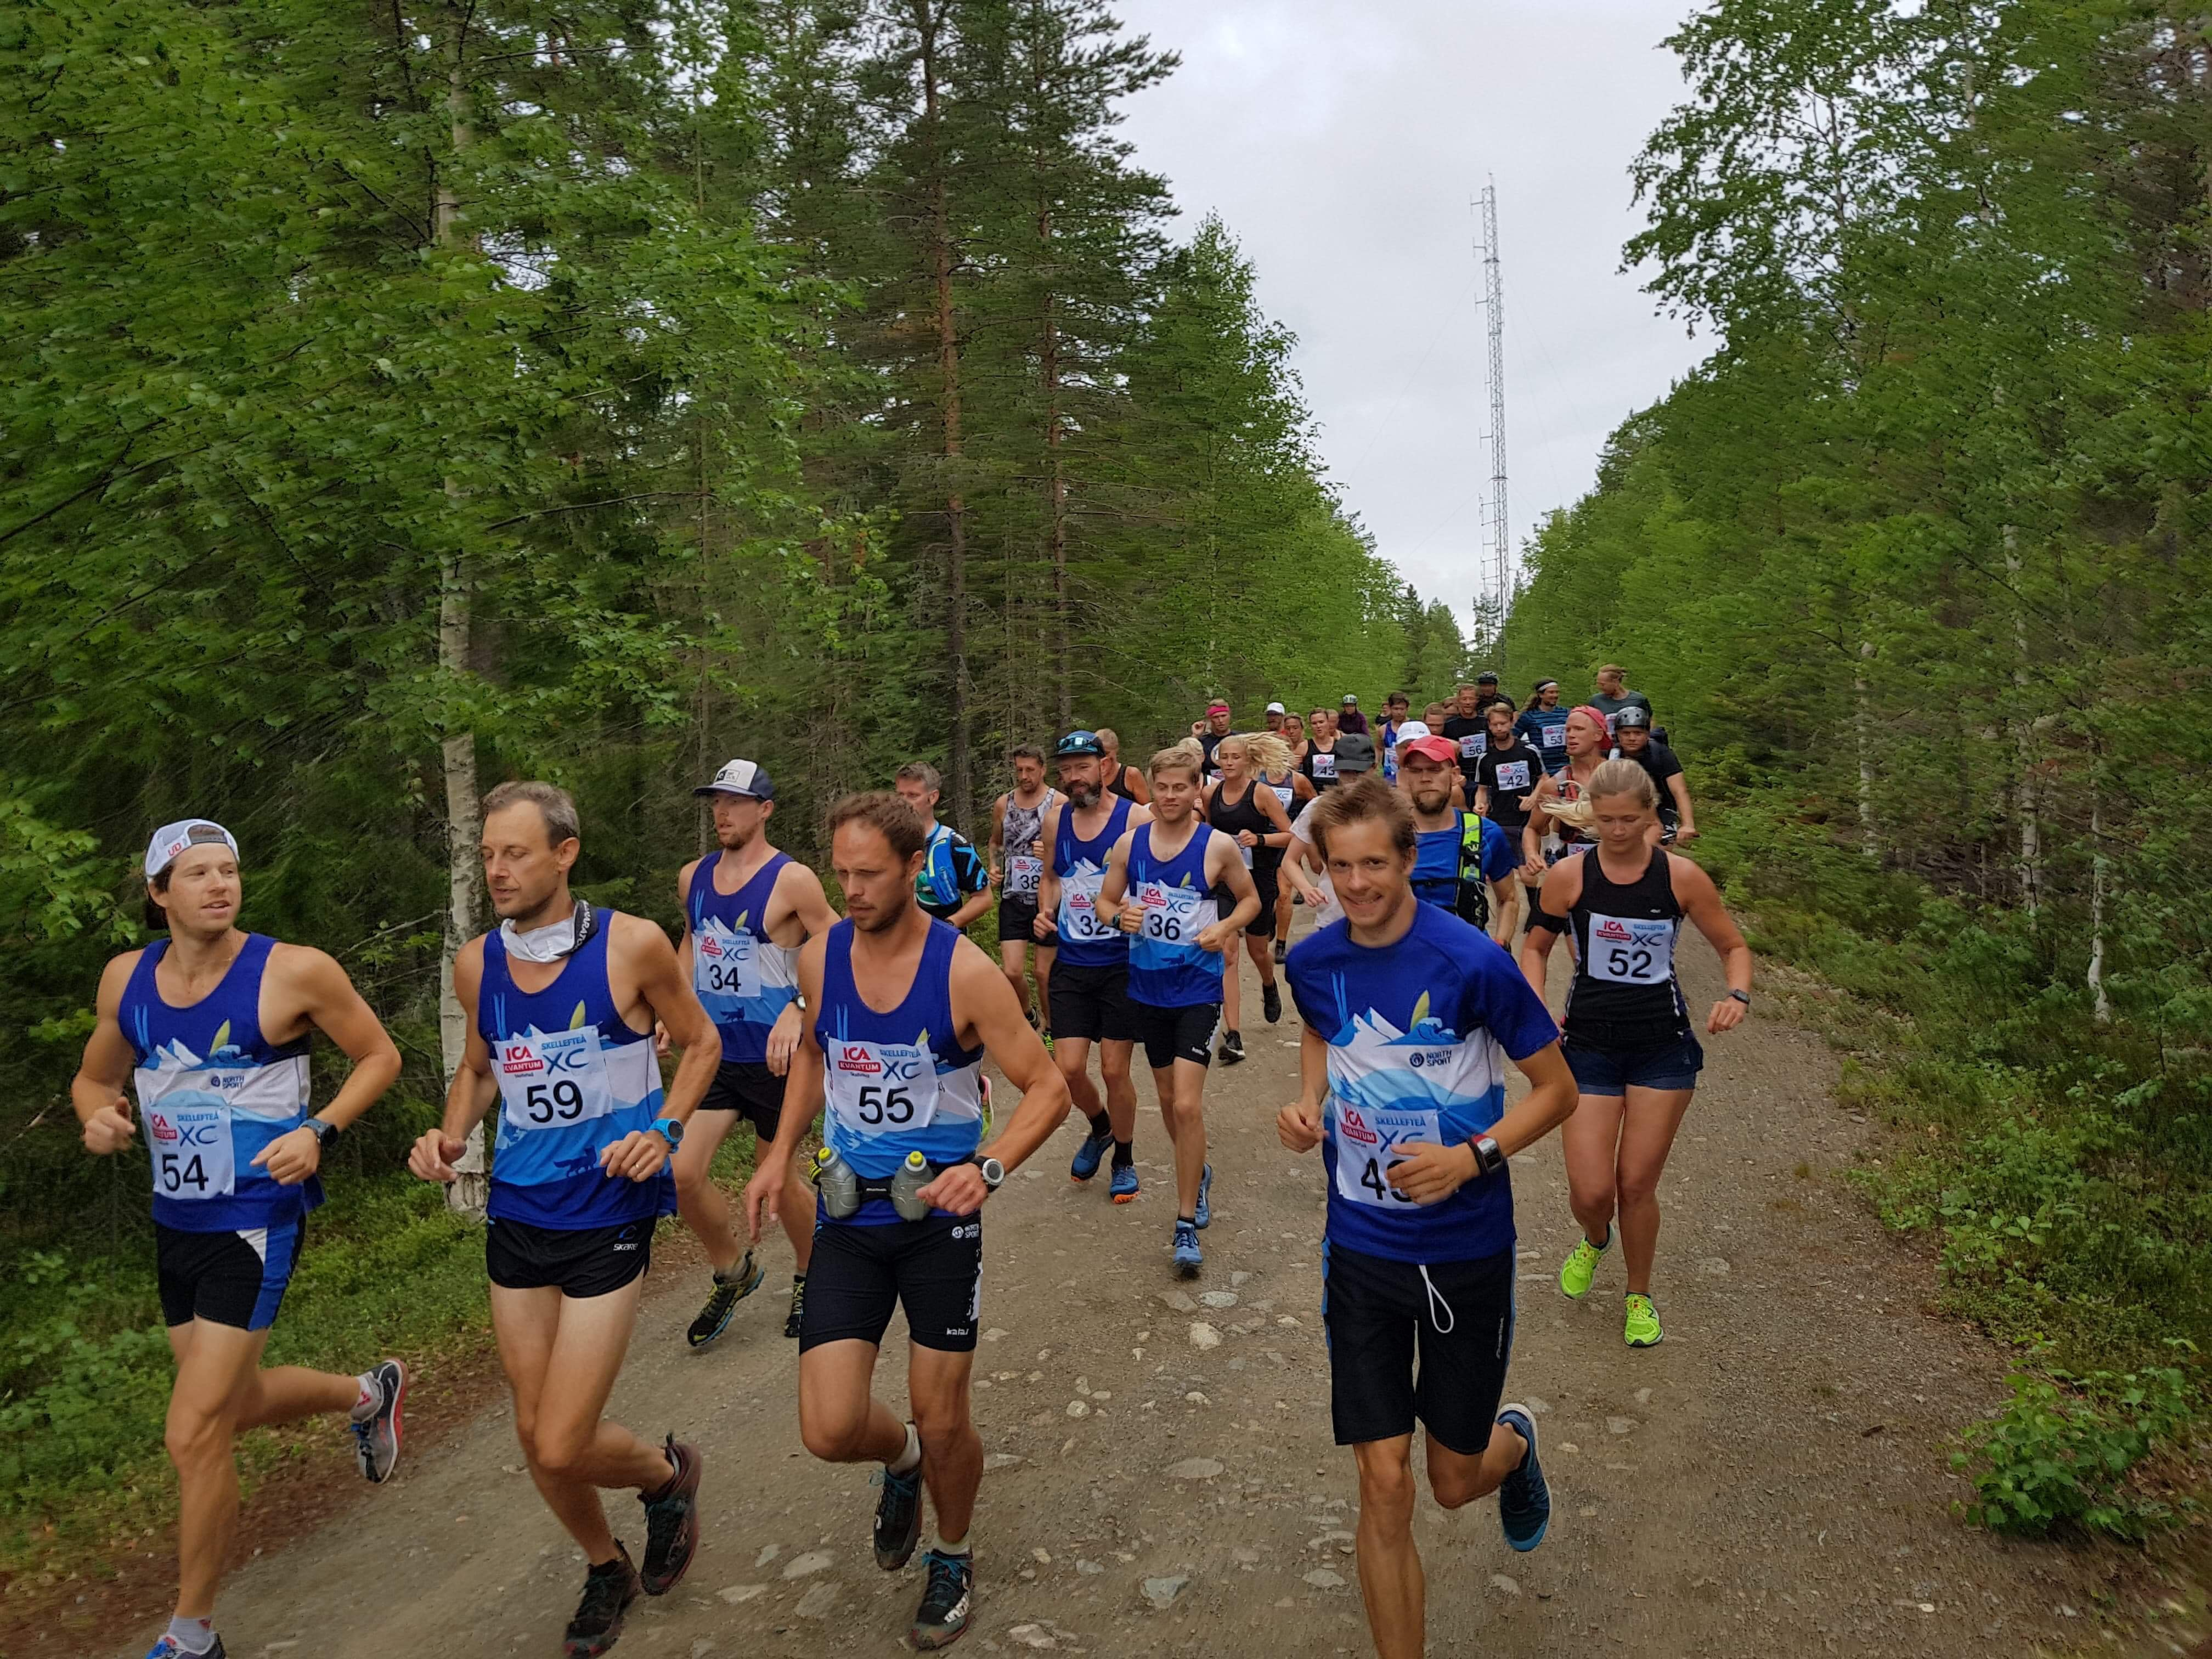 Northsport trail start